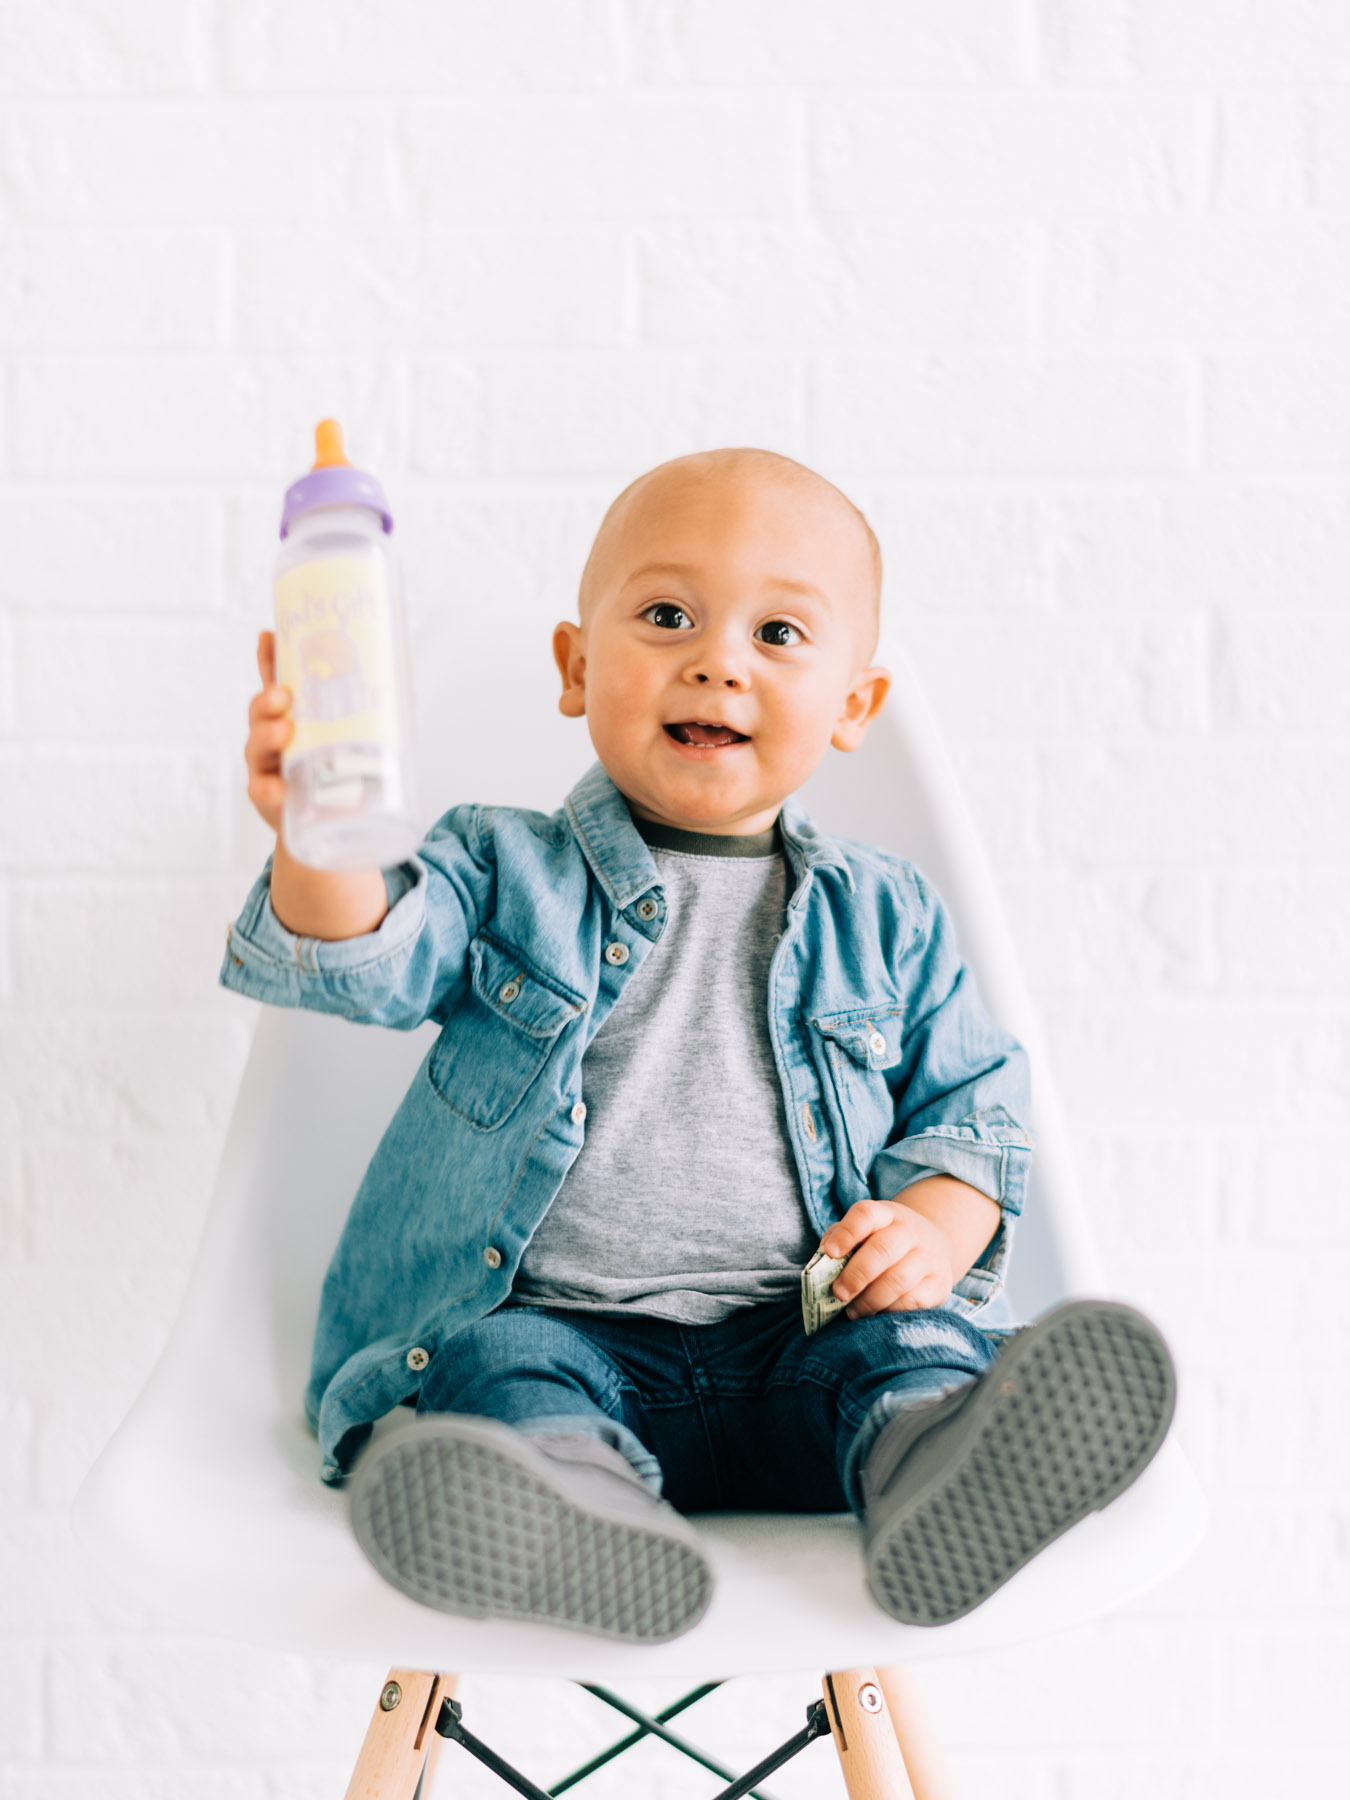 Welcome to Baby Bottle Boomerang! - Baby Bottle Boomerang (BBB) is a community fundraiser that helps Pregnancy Care Center equip abortion-vulnerable women and men with the support and information they need to choose life for their unborn baby.